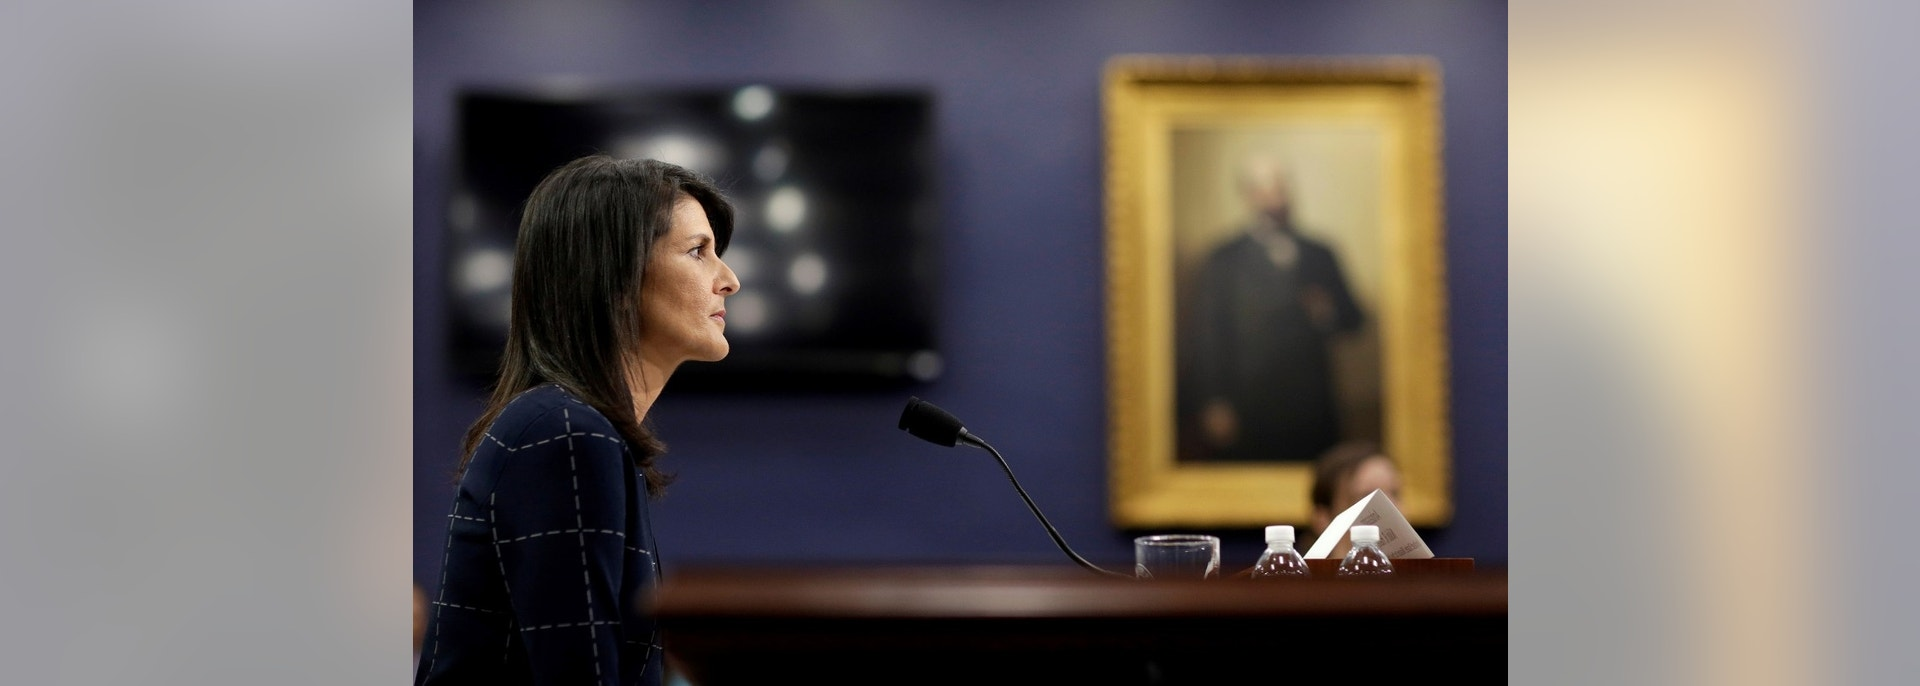 U.S. Ambassador to the United Nations Nikki Haley waits to testify to the House Appropriations State, Foreign Operations and Related Programs Subcommittee on the budget for the U.N. in Washington, D.C., U.S., June 27, 2017. REUTERS/Joshua Roberts - RC19F6EE2820